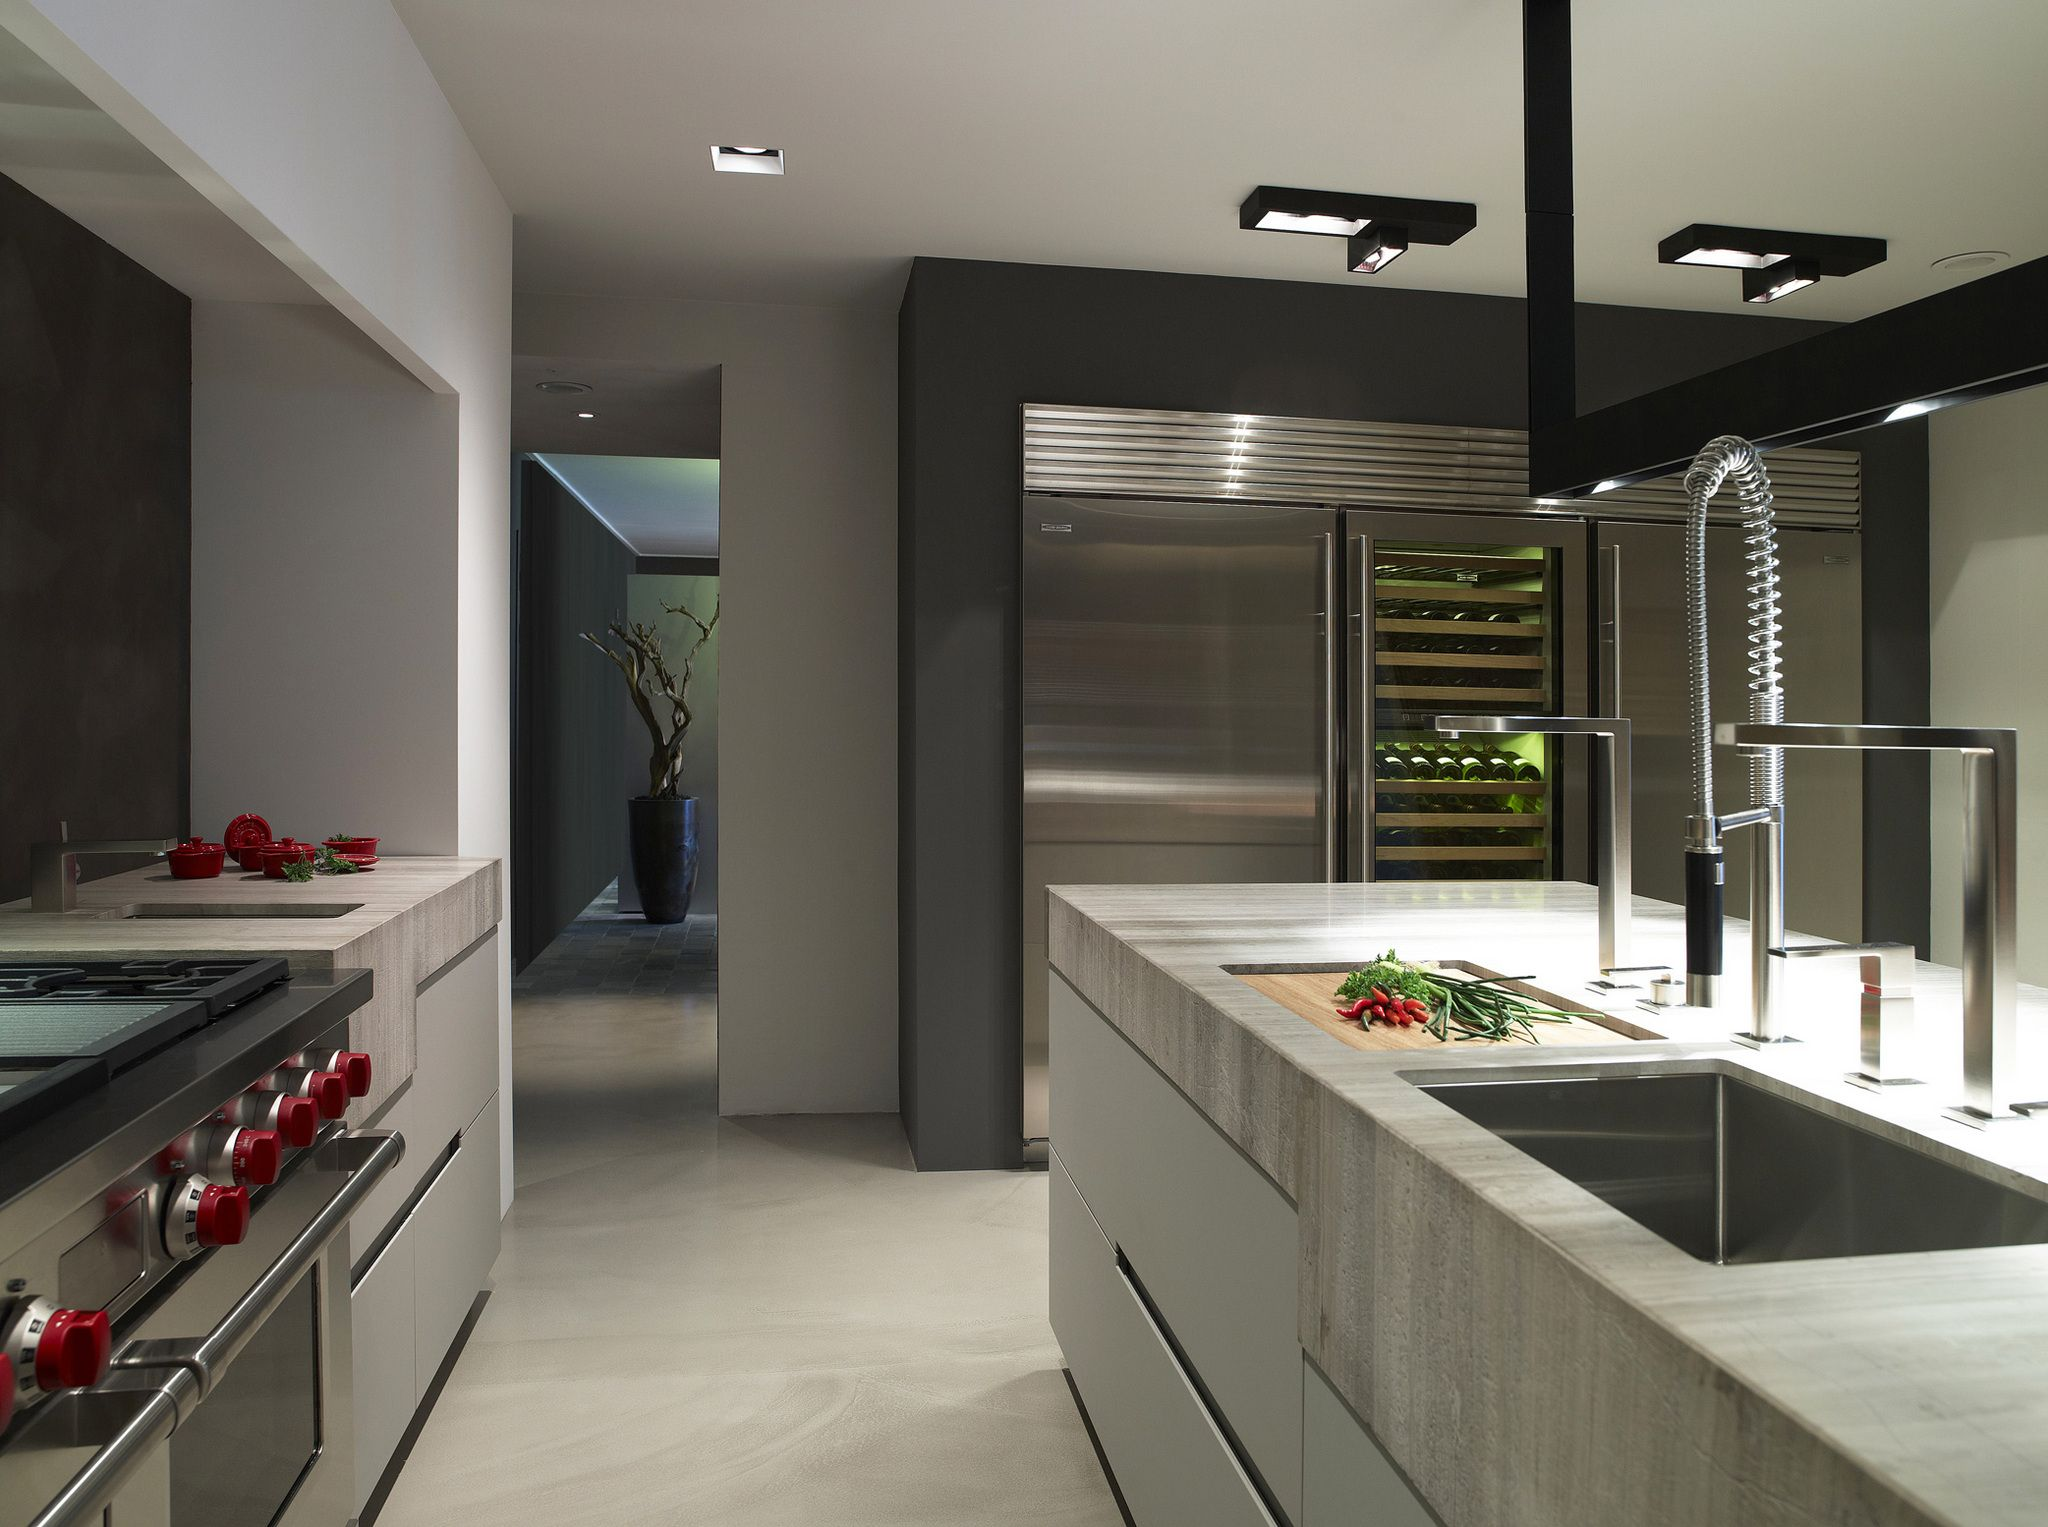 High End Kitchen Design Images Culimaat High End Kitchens Interiors Italiaanse Keukens En